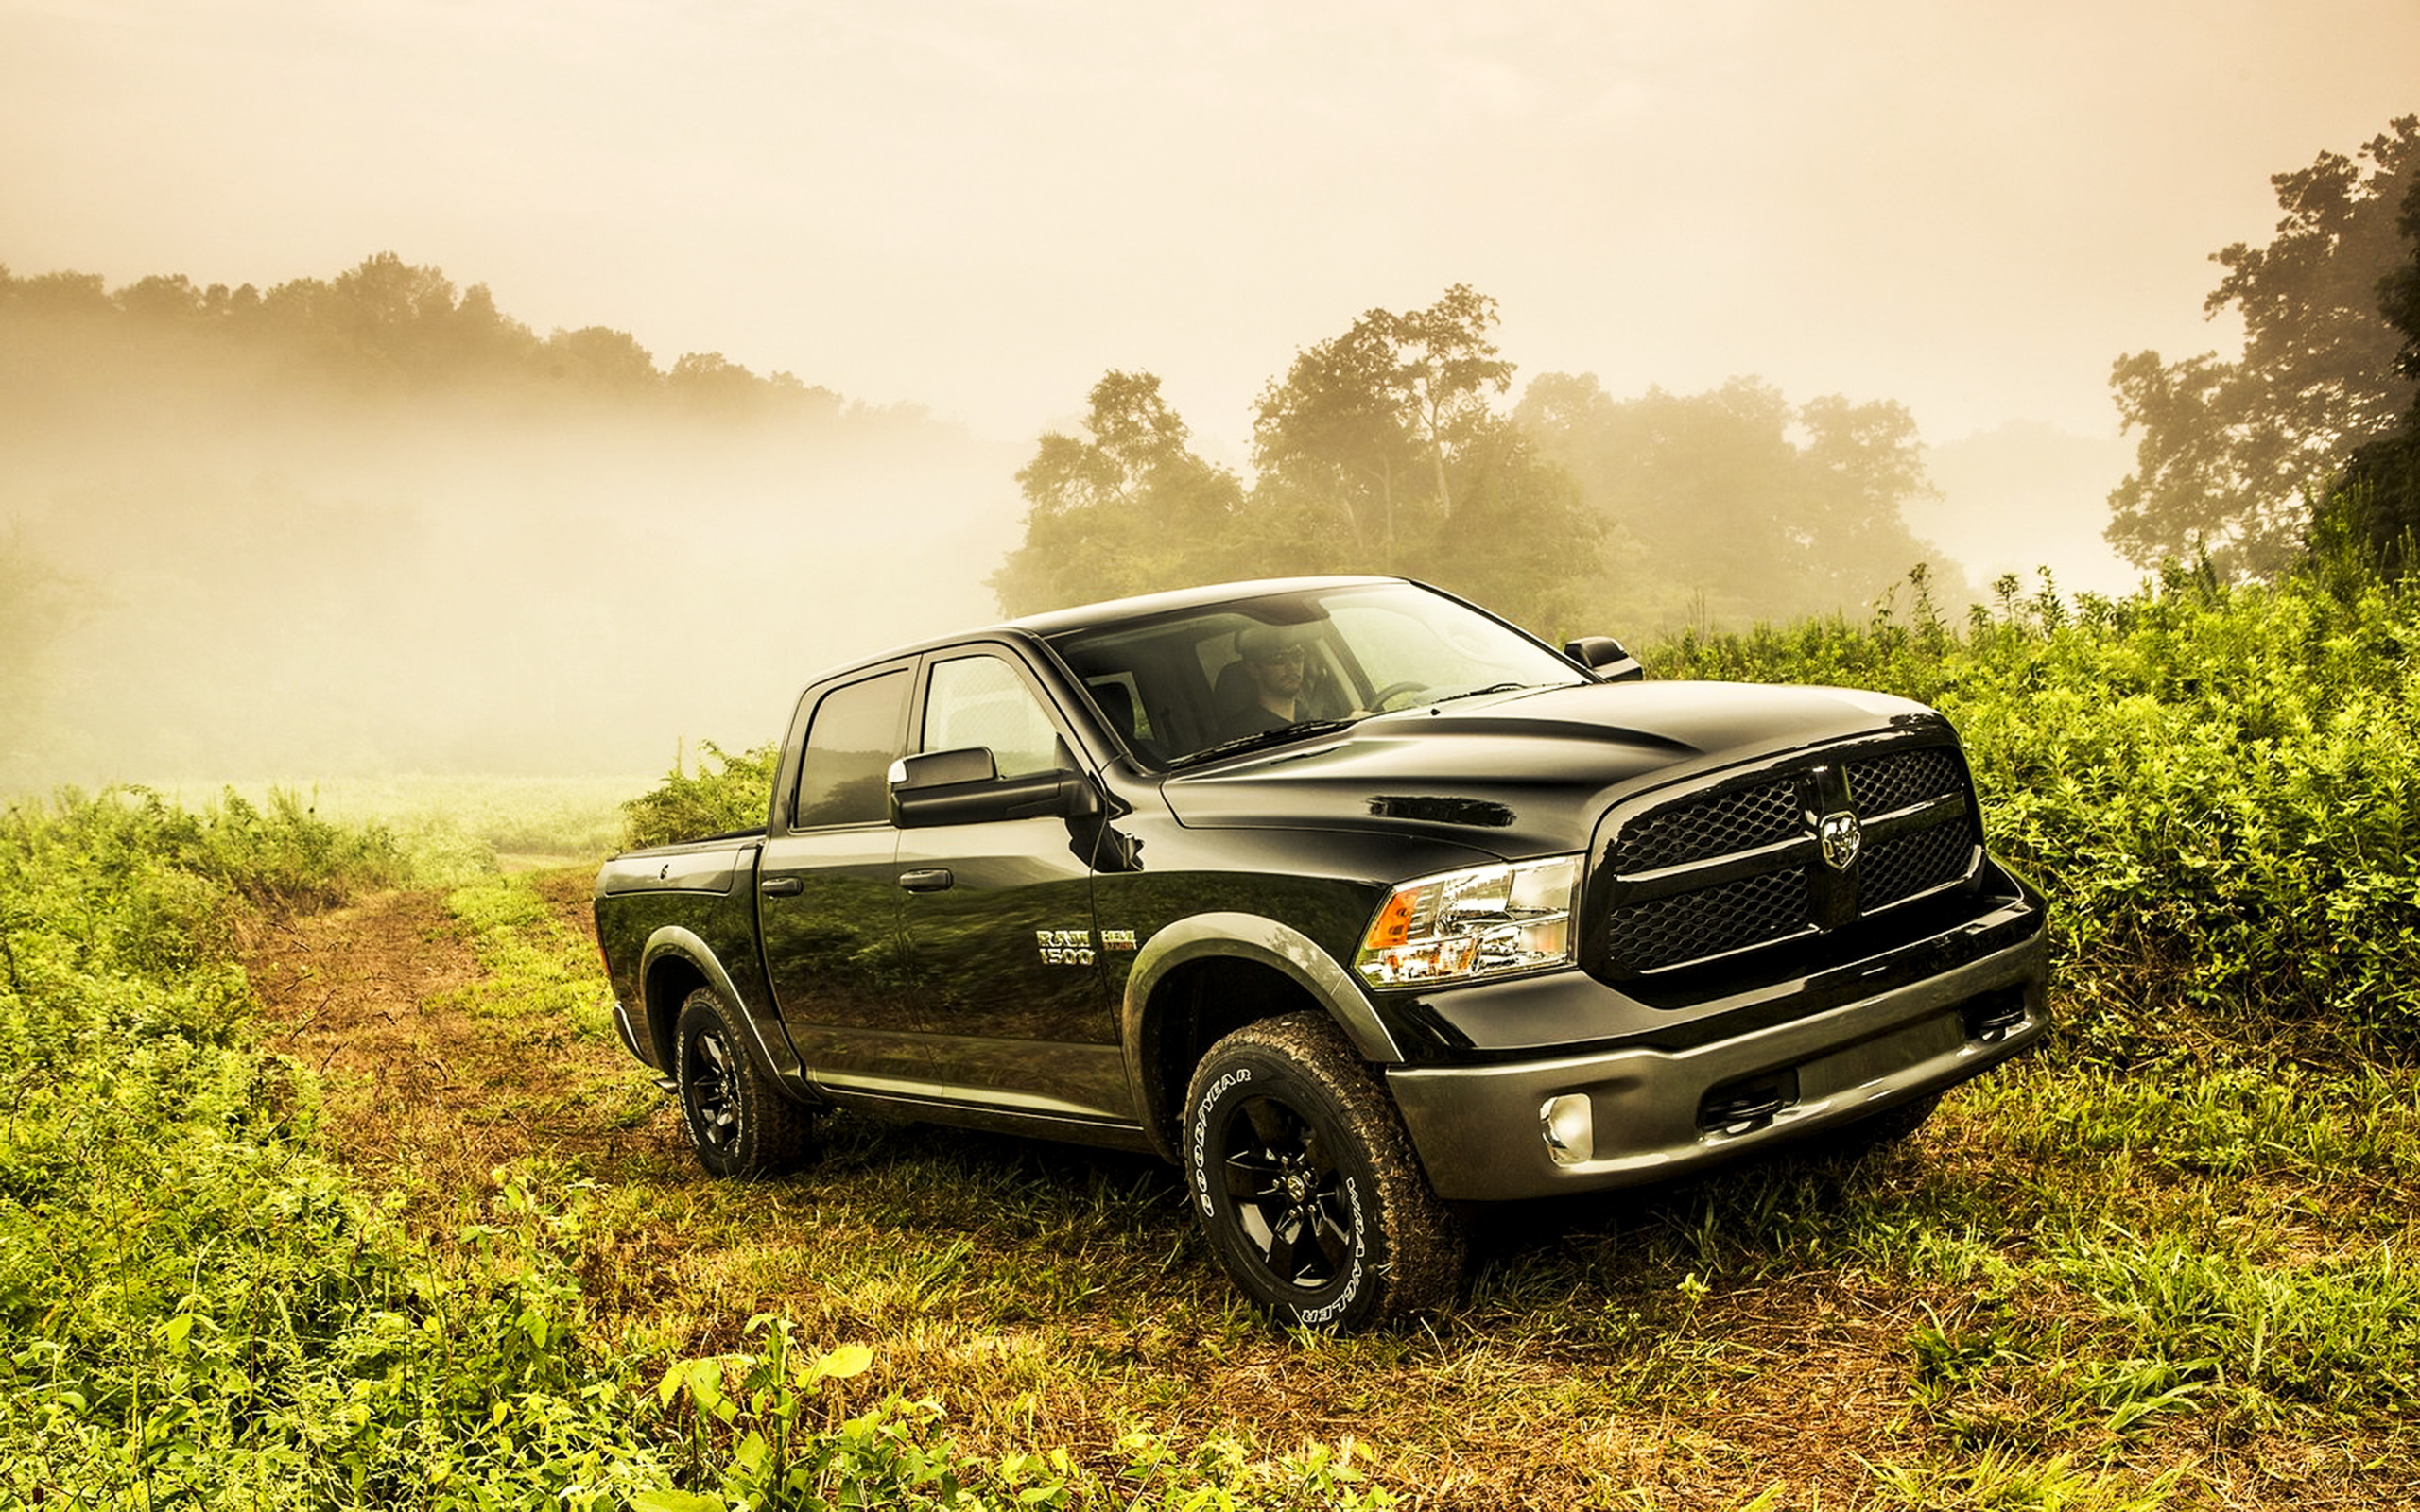 27 Dodge Ram 1500 HD Wallpapers Background Images 2560x1600